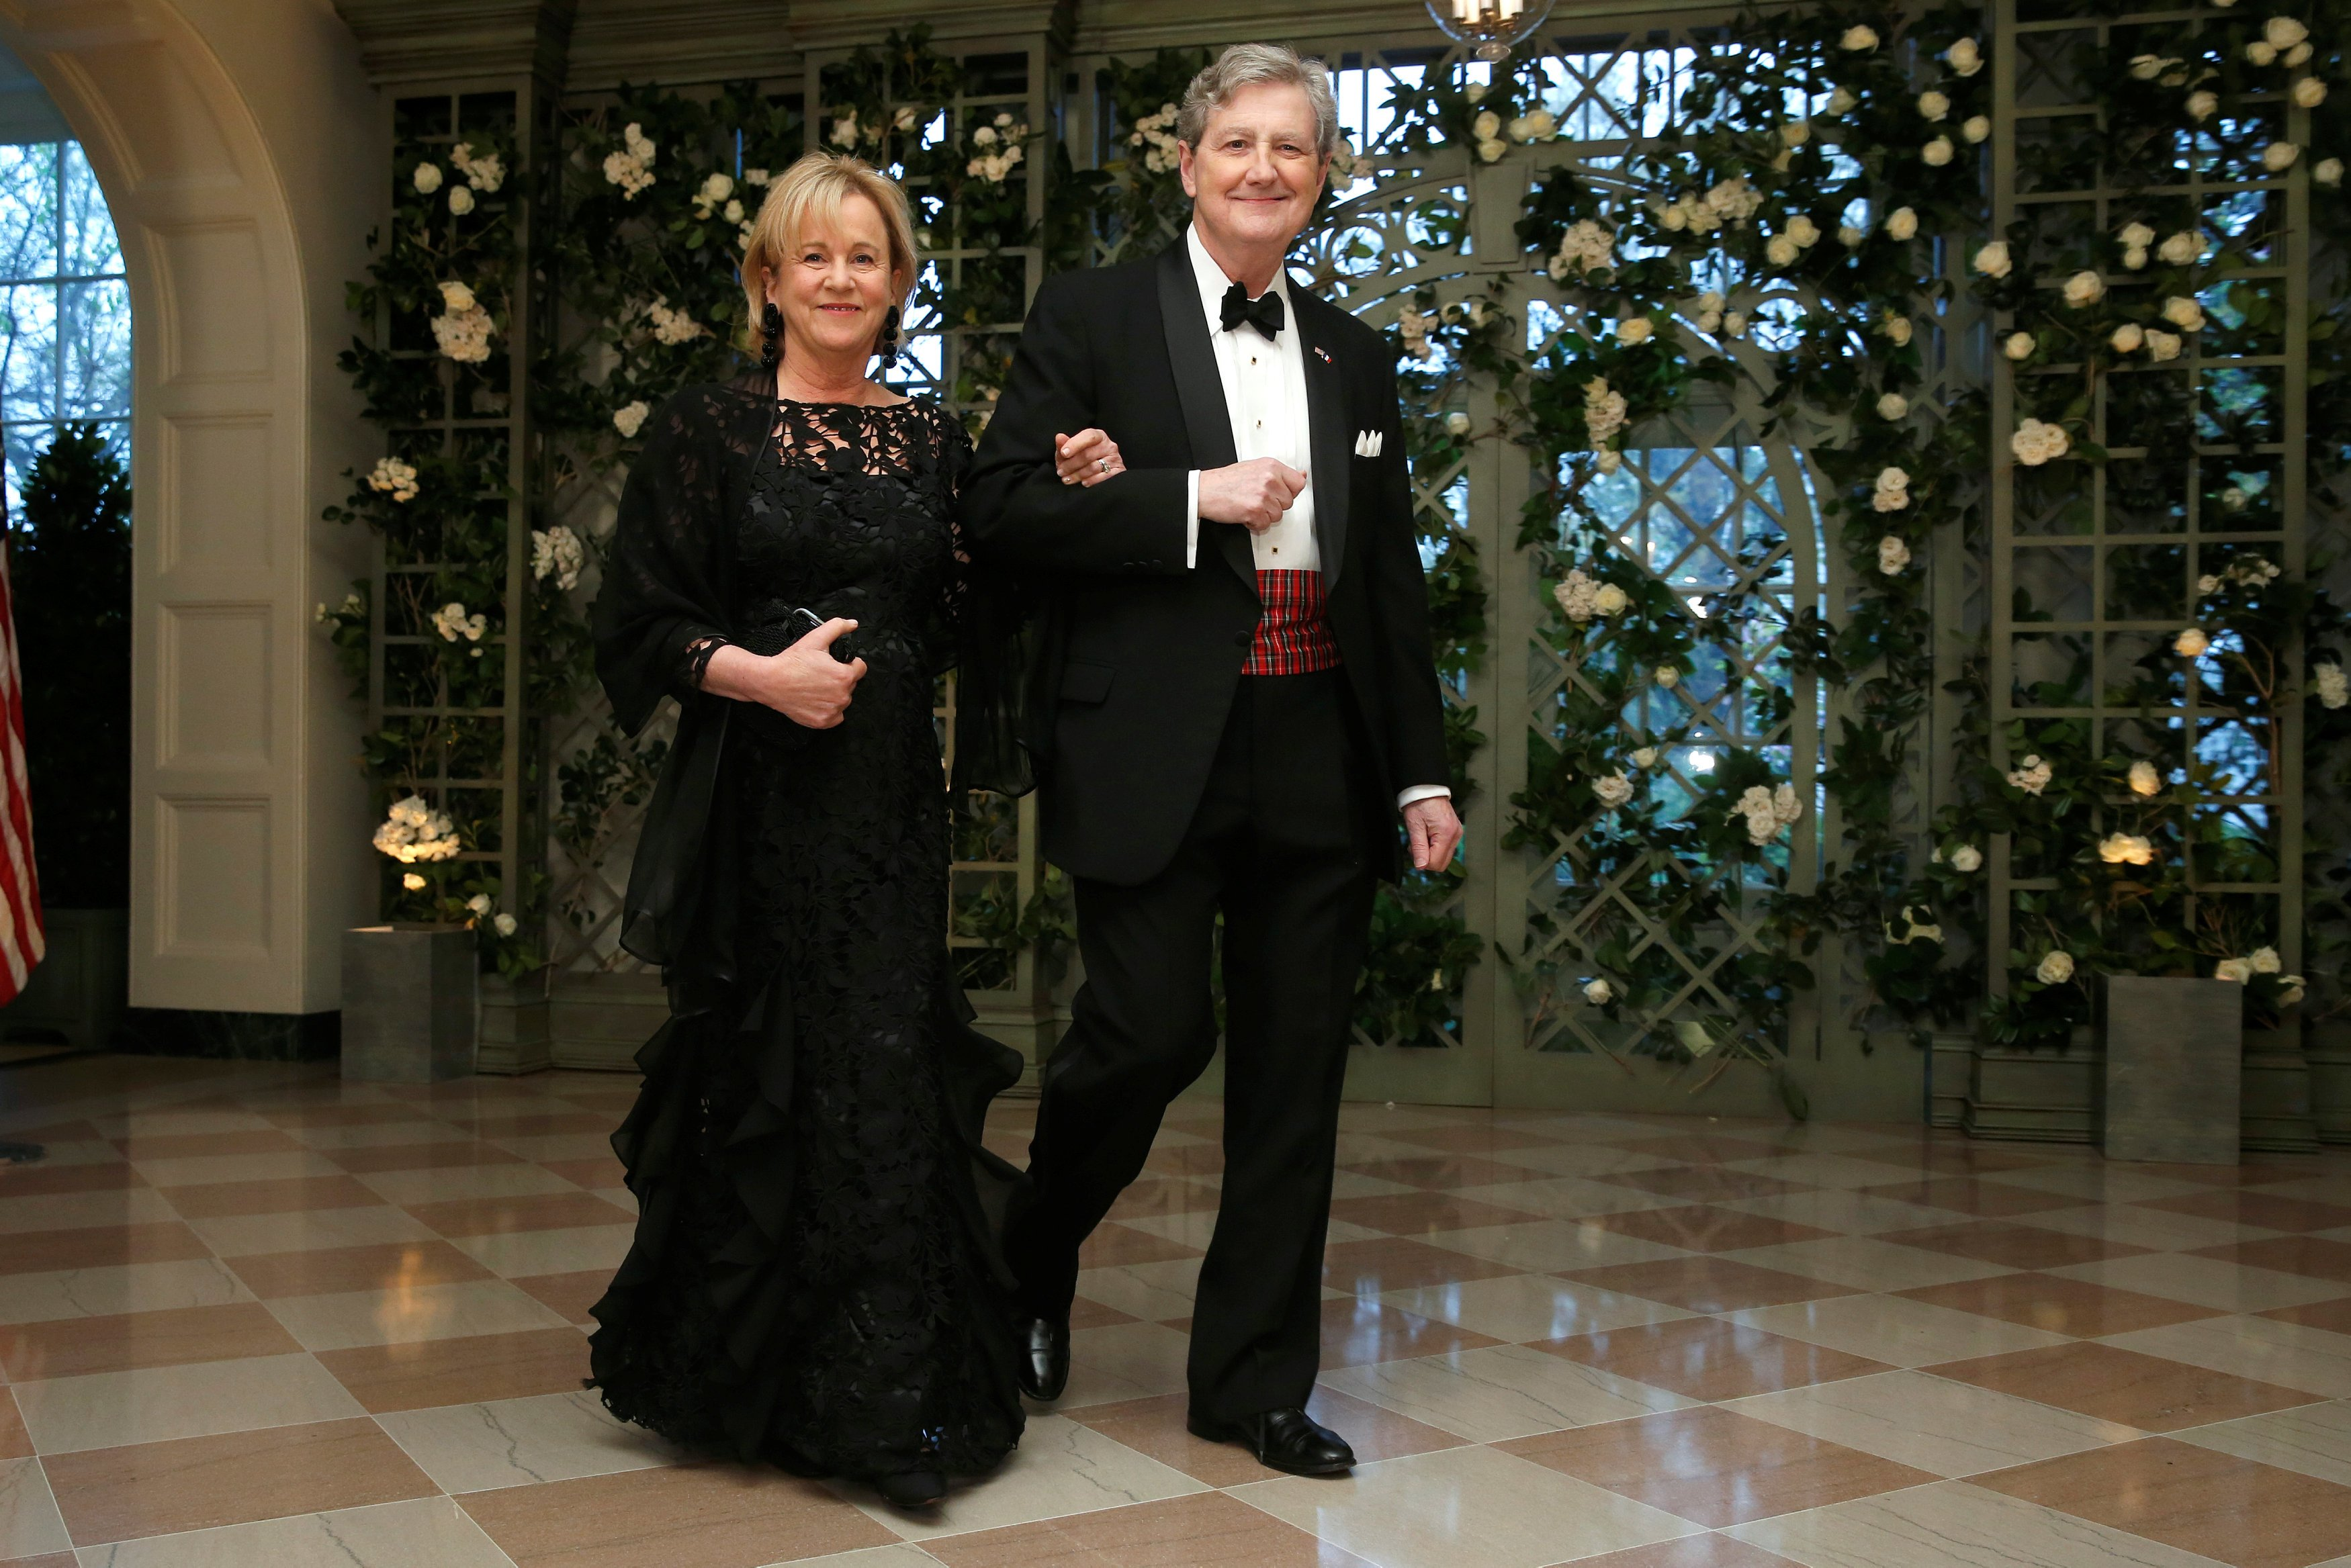 Senator Kennedy and his wife arrive for the State Dinner in honor of French President Macron at the White House in Washington